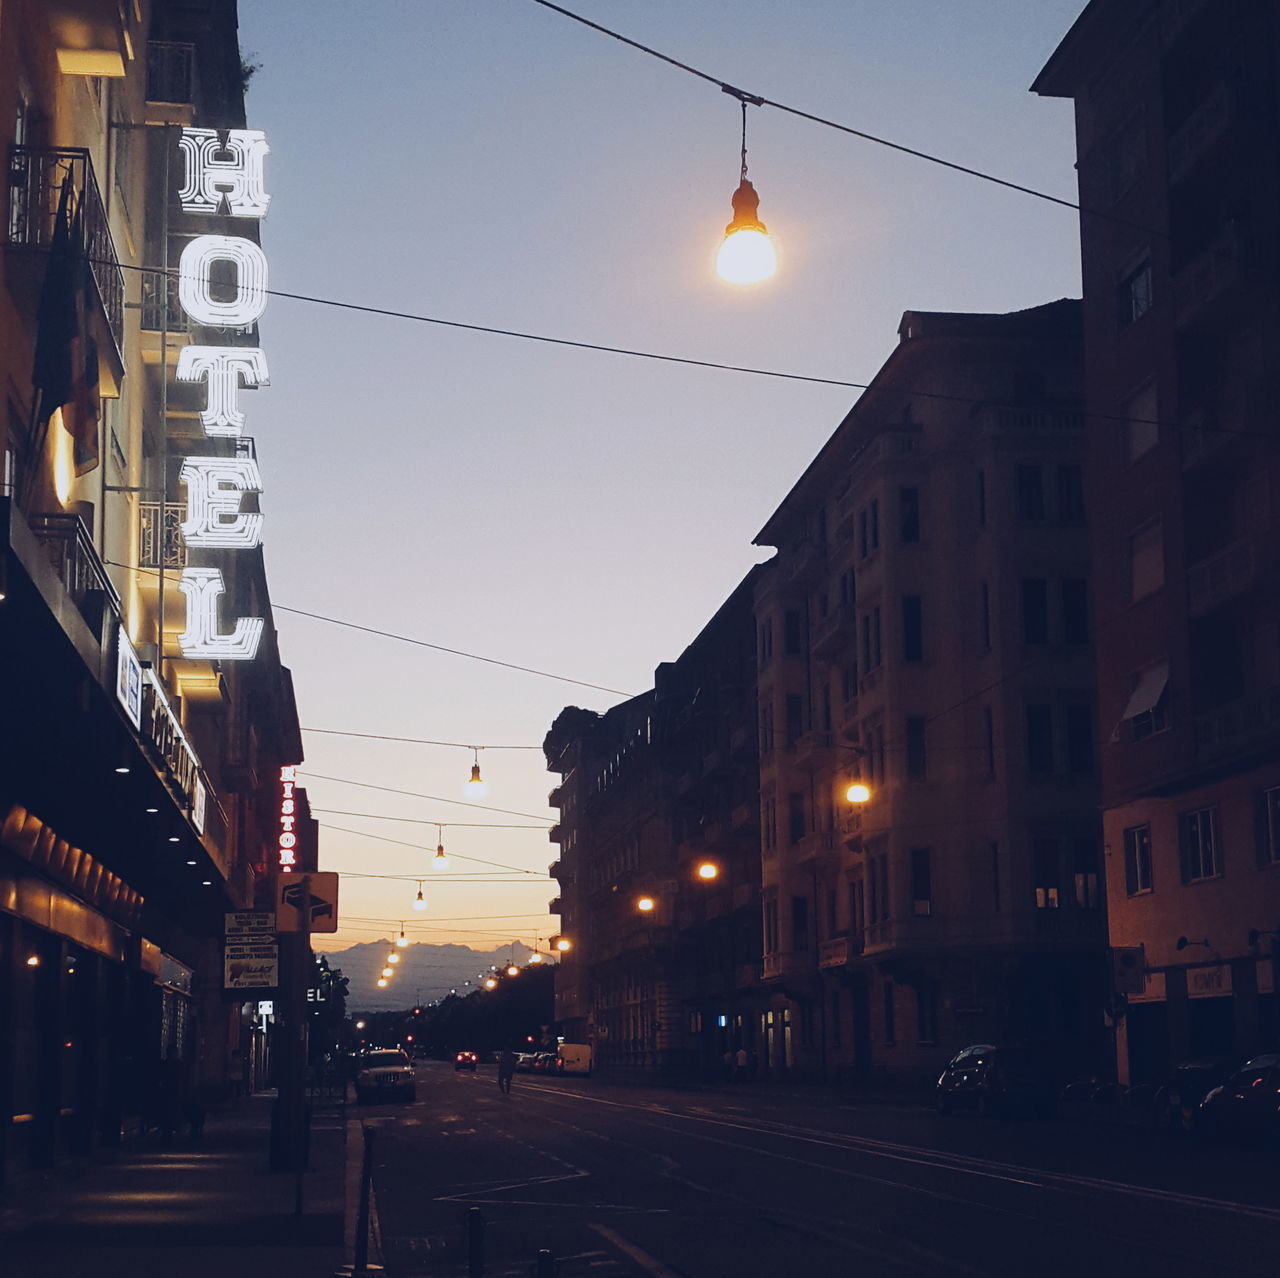 Hotel Torino Streetphotography Sunset City Light And Shadow Light Architecture Italy Showcase June